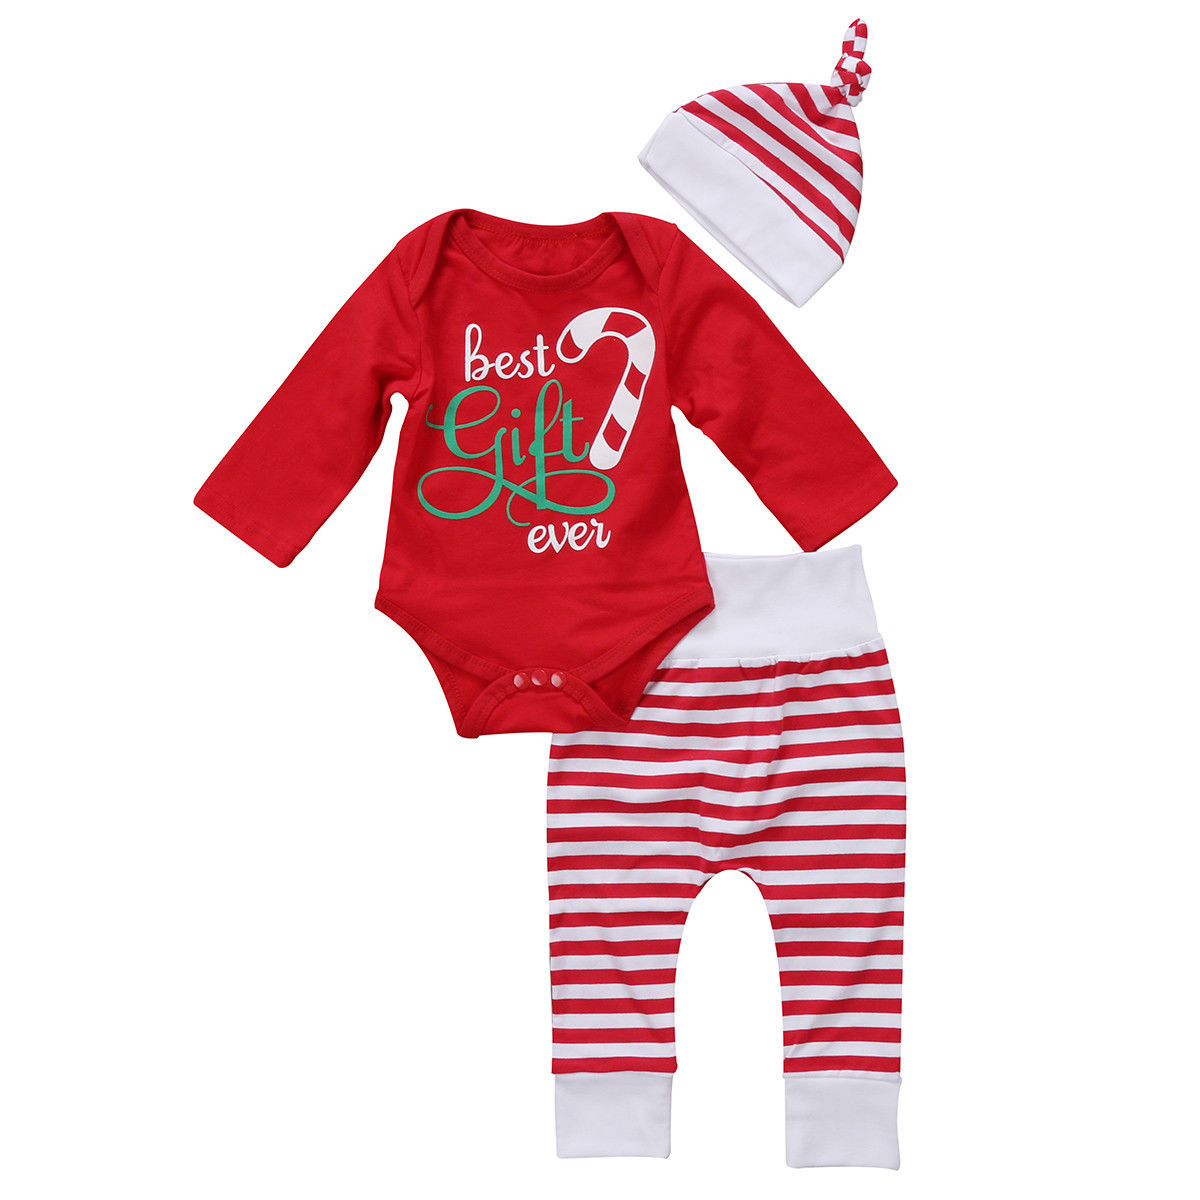 2017 Brand New 3PCS Set Newborn Toddler Infant Baby Girl Boy Clothes Romper Long Sleeve Shirt Tops Pants Hat Santa Candy Outfits infant baby boy girl 2pcs clothes set kids short sleeve you serious clark letters romper tops car print pants 2pcs outfit set